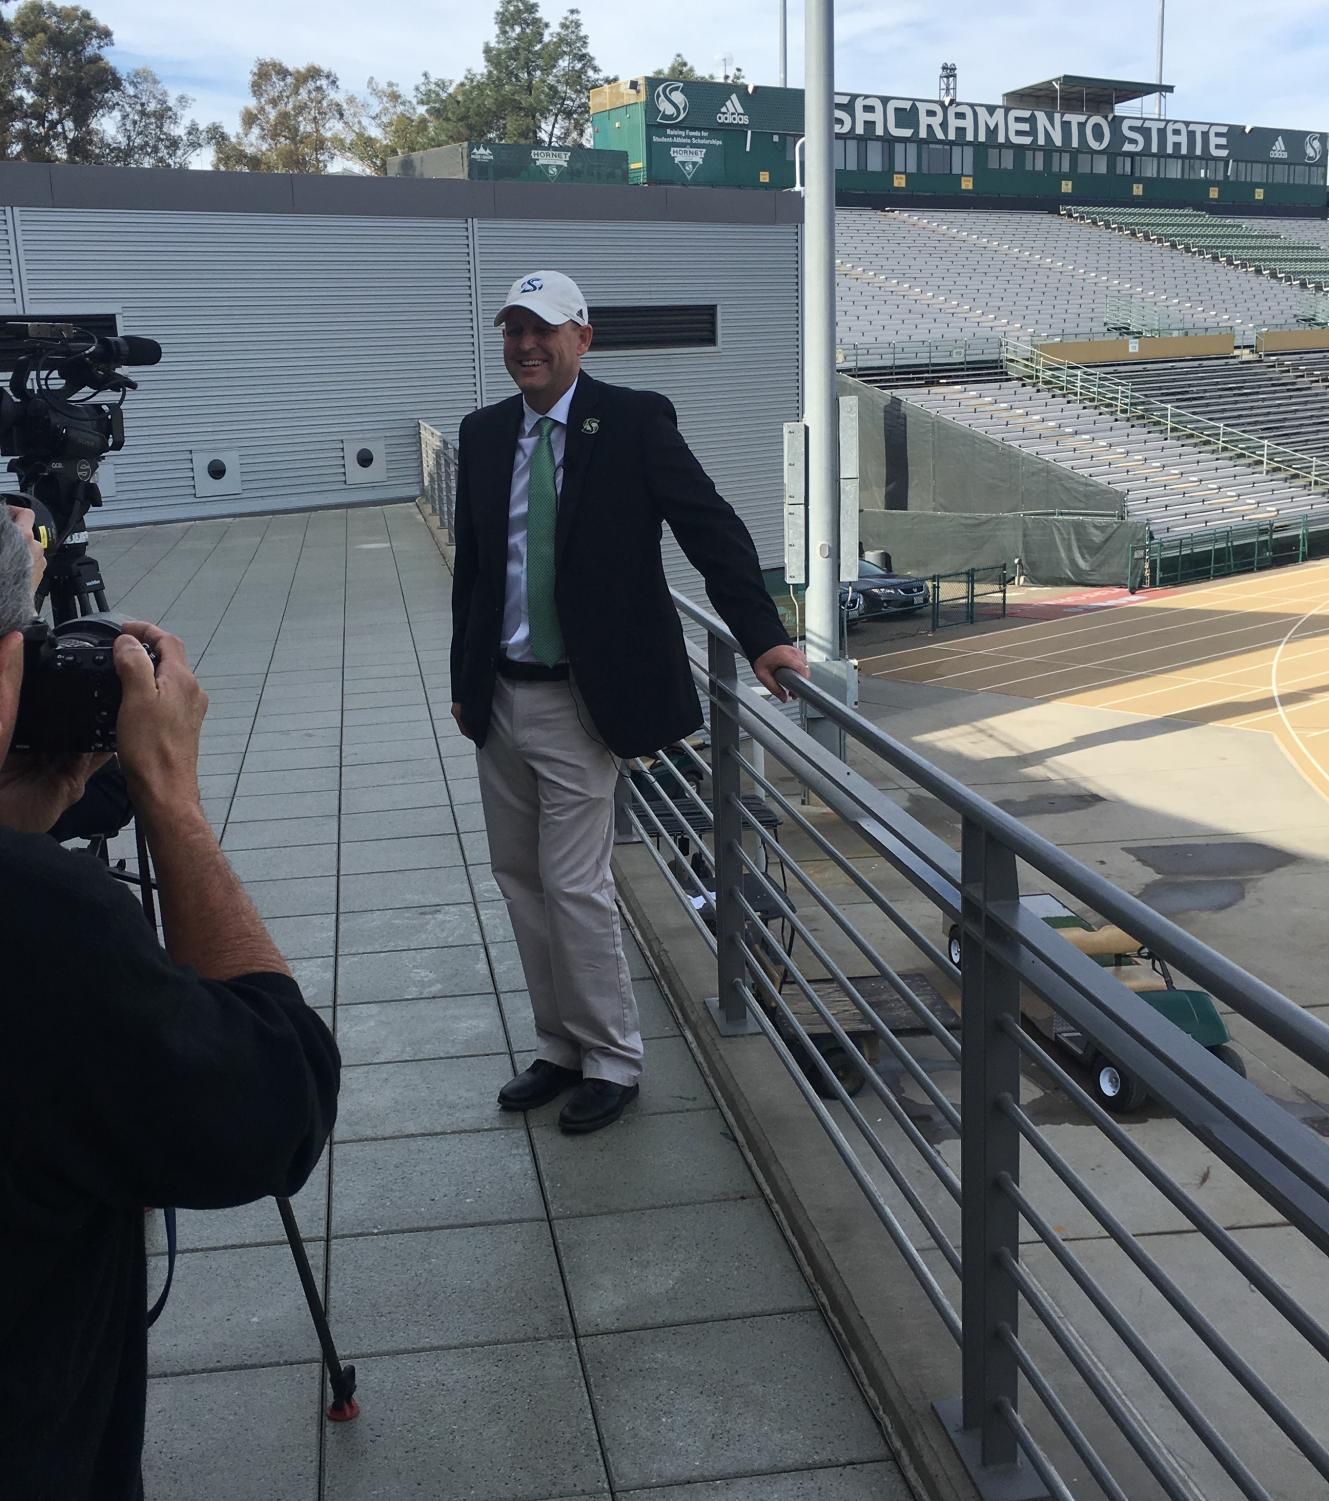 Sac State football coach Troy Taylor overlooks the football stadium he will be coaching in. Taylor was named head coach on Dec. 17, 2018 after the Hornets fired Jody Sears.